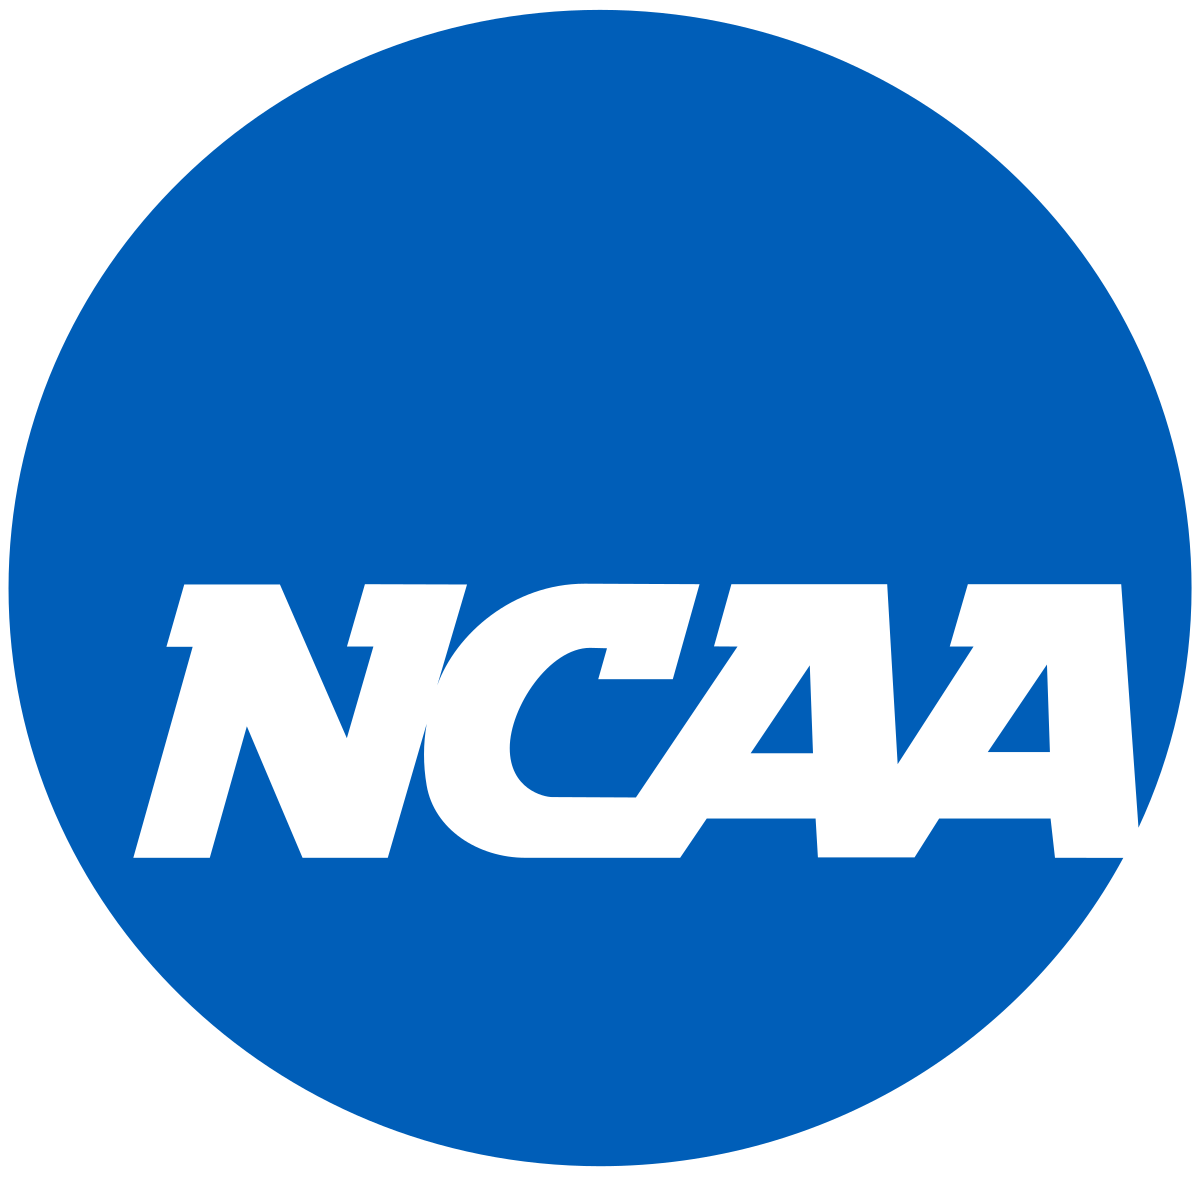 legal NCAA betting - NCAA logo